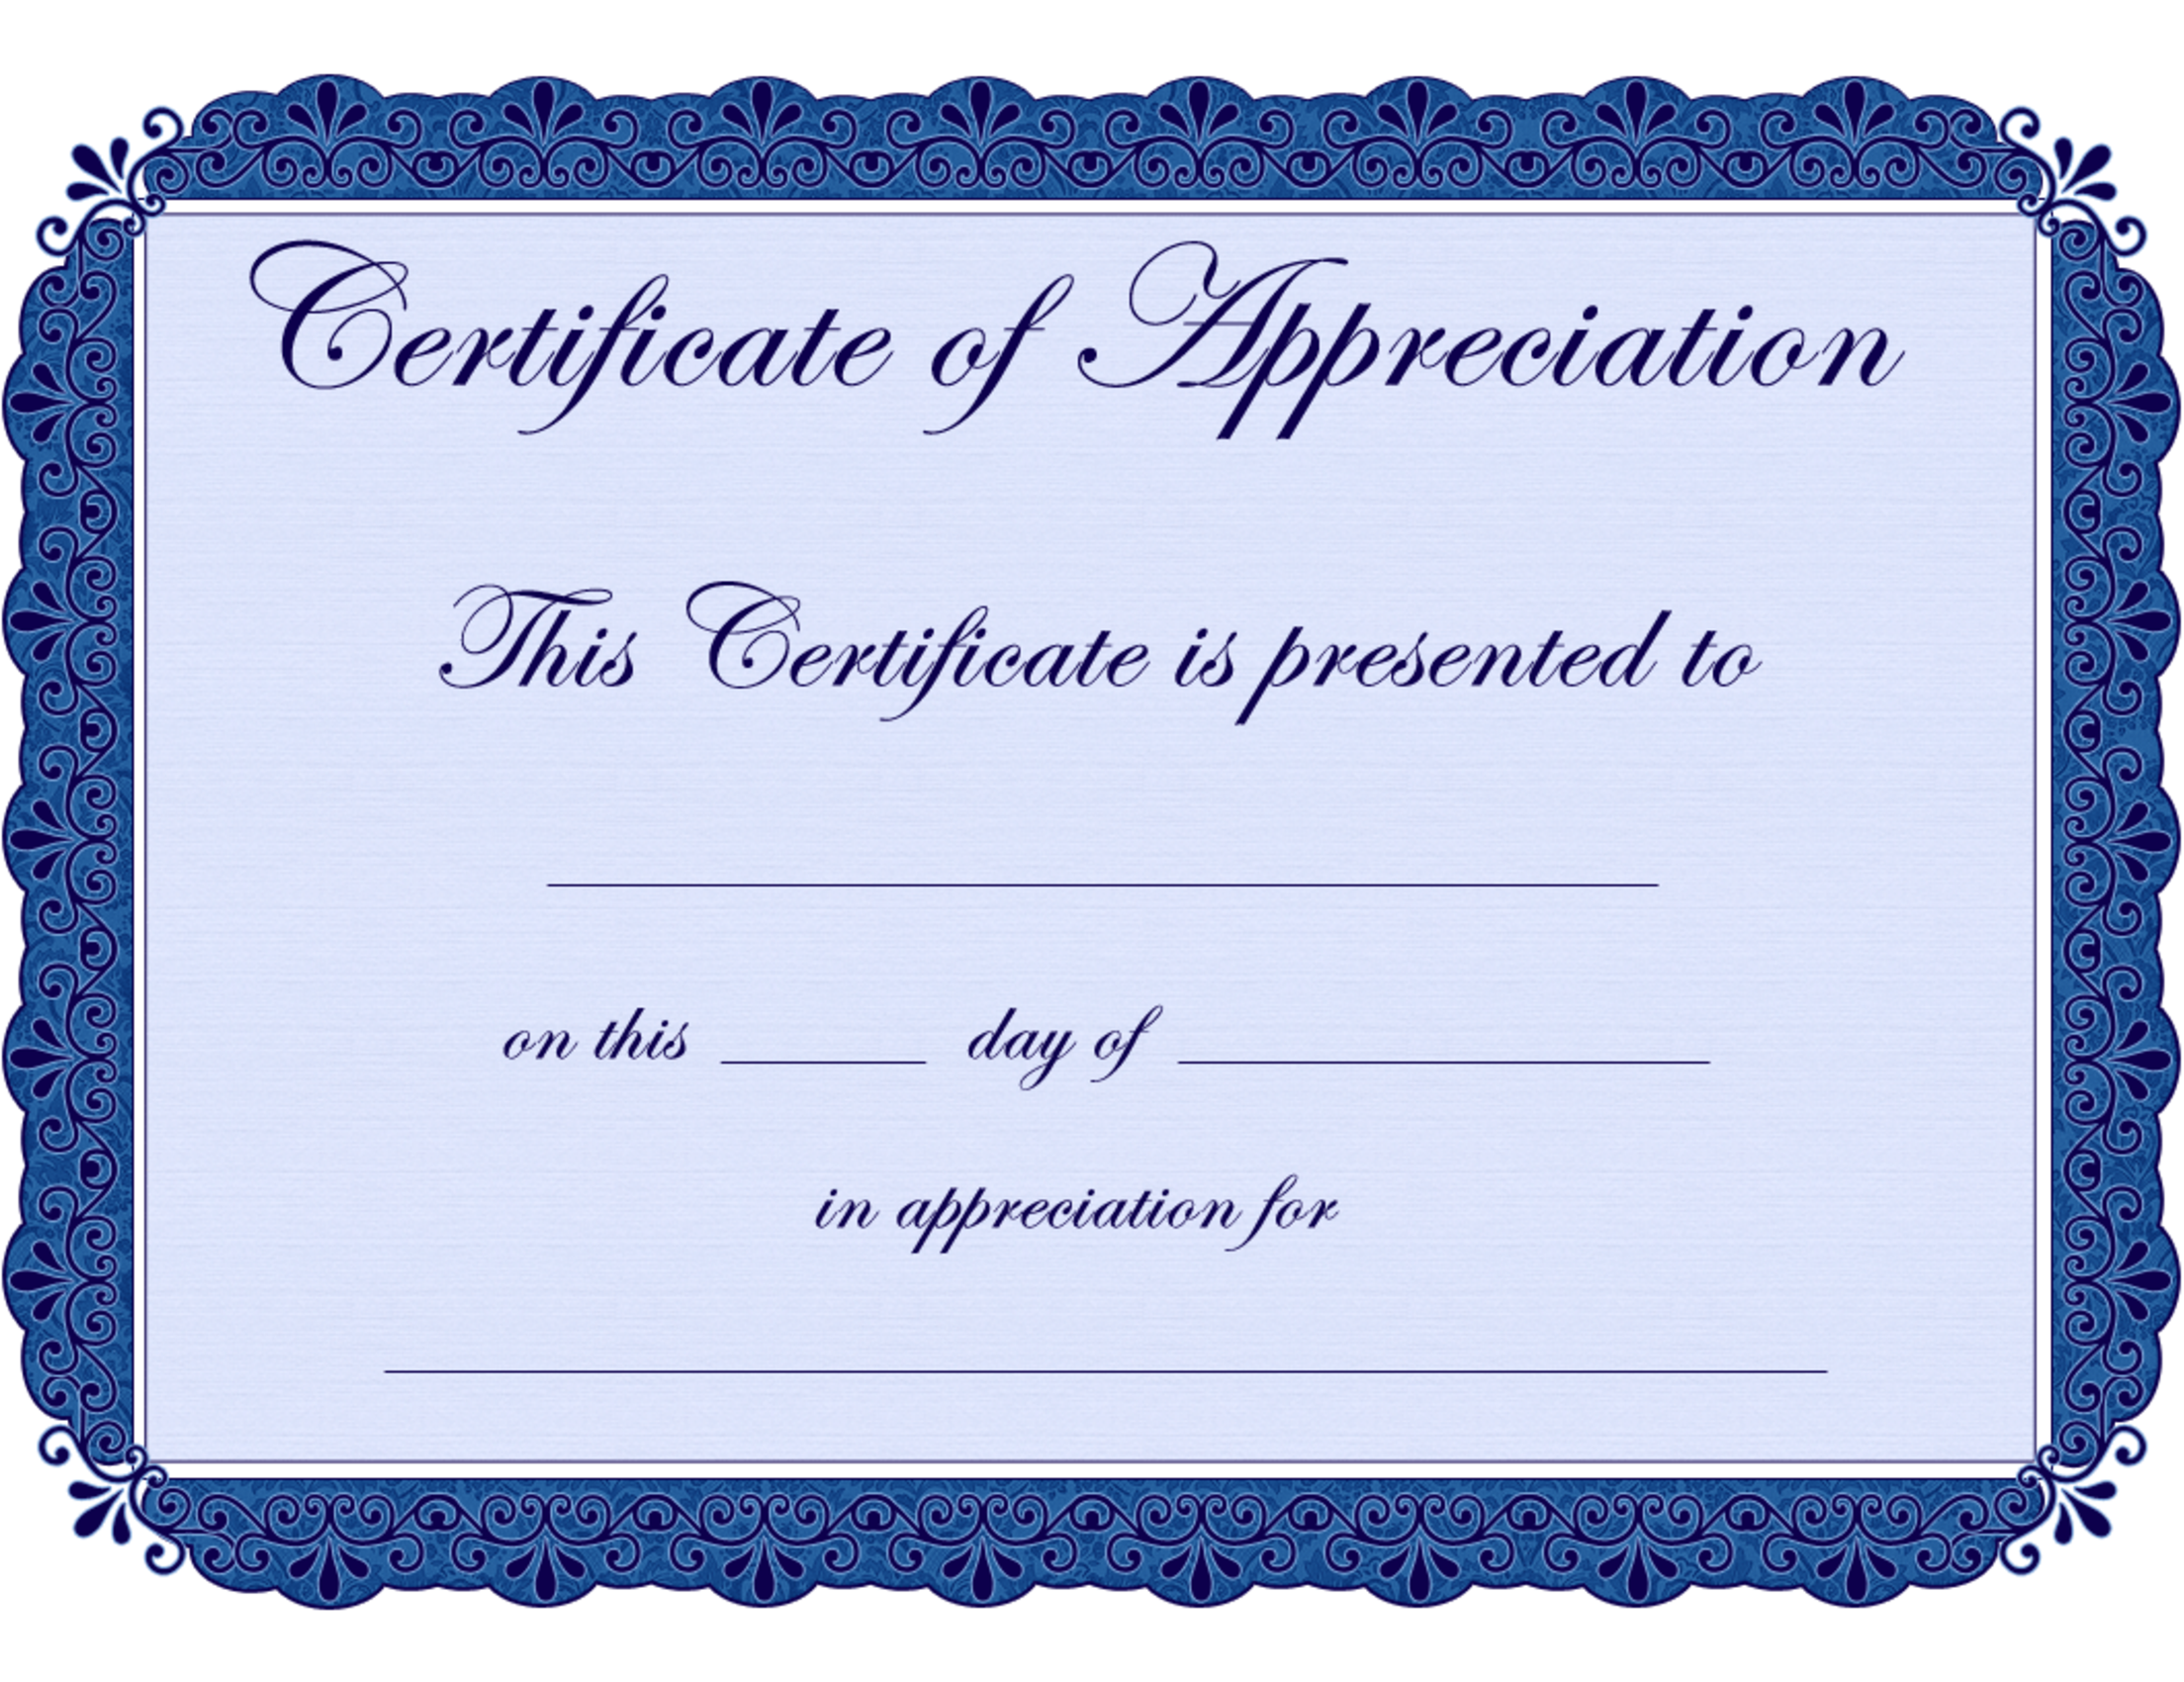 Free printable certificates certificate of appreciation certificate free printable certificates certificate of appreciation certificate yadclub Images